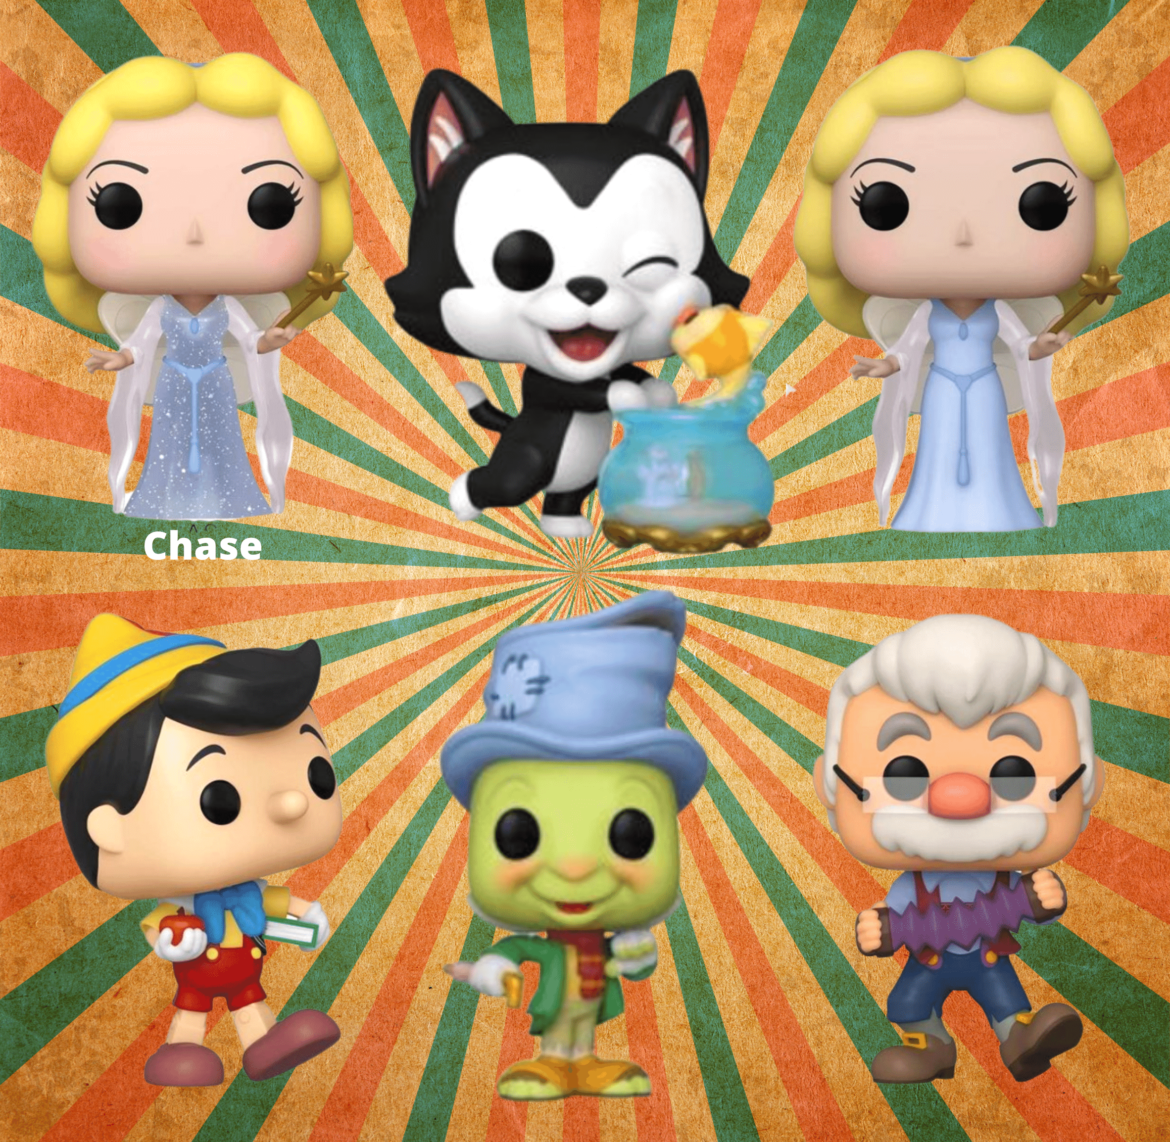 Funko Pop to Release Anniversary of Classic Films with New Pops!